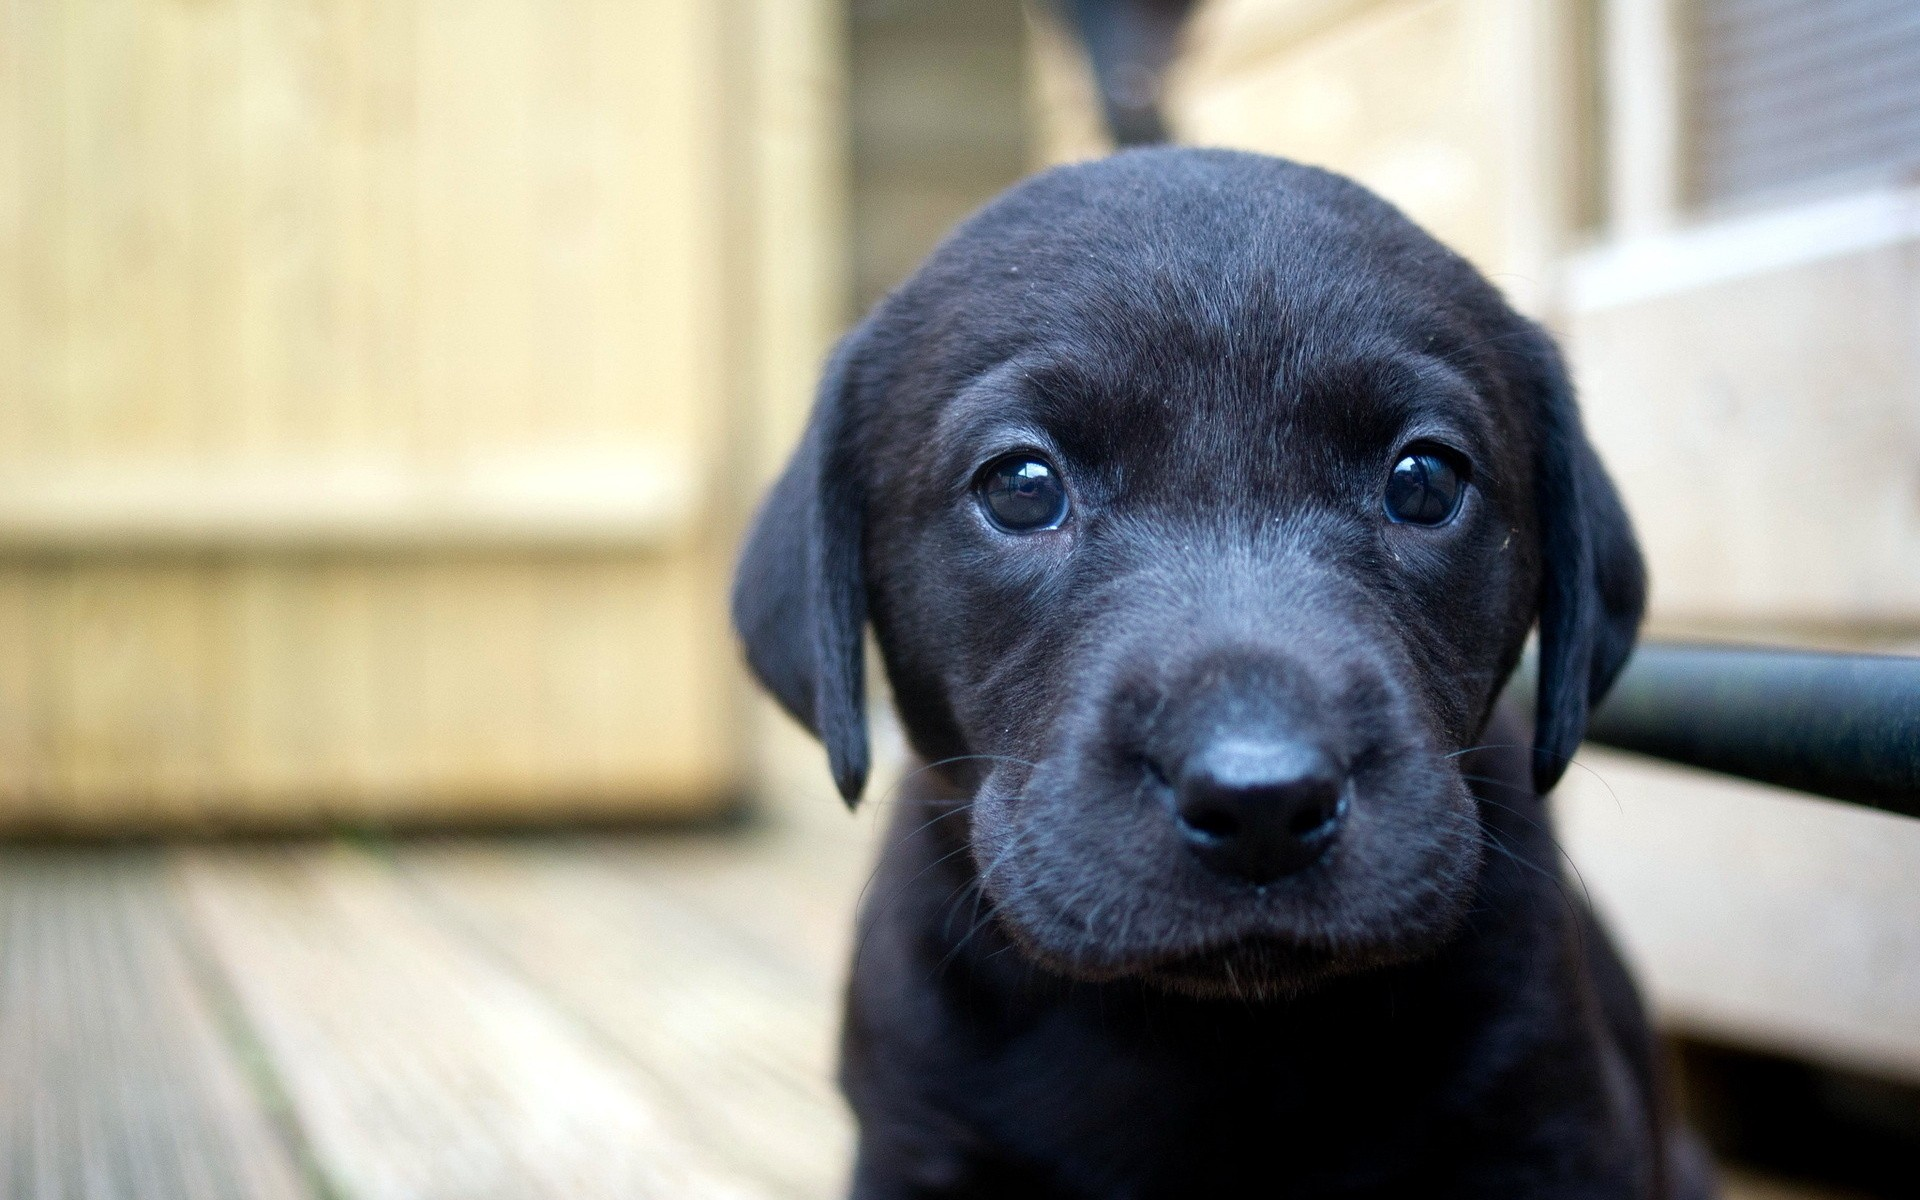 Black labrador puppy images for desktop and wallpaper   Picture for 1920x1200